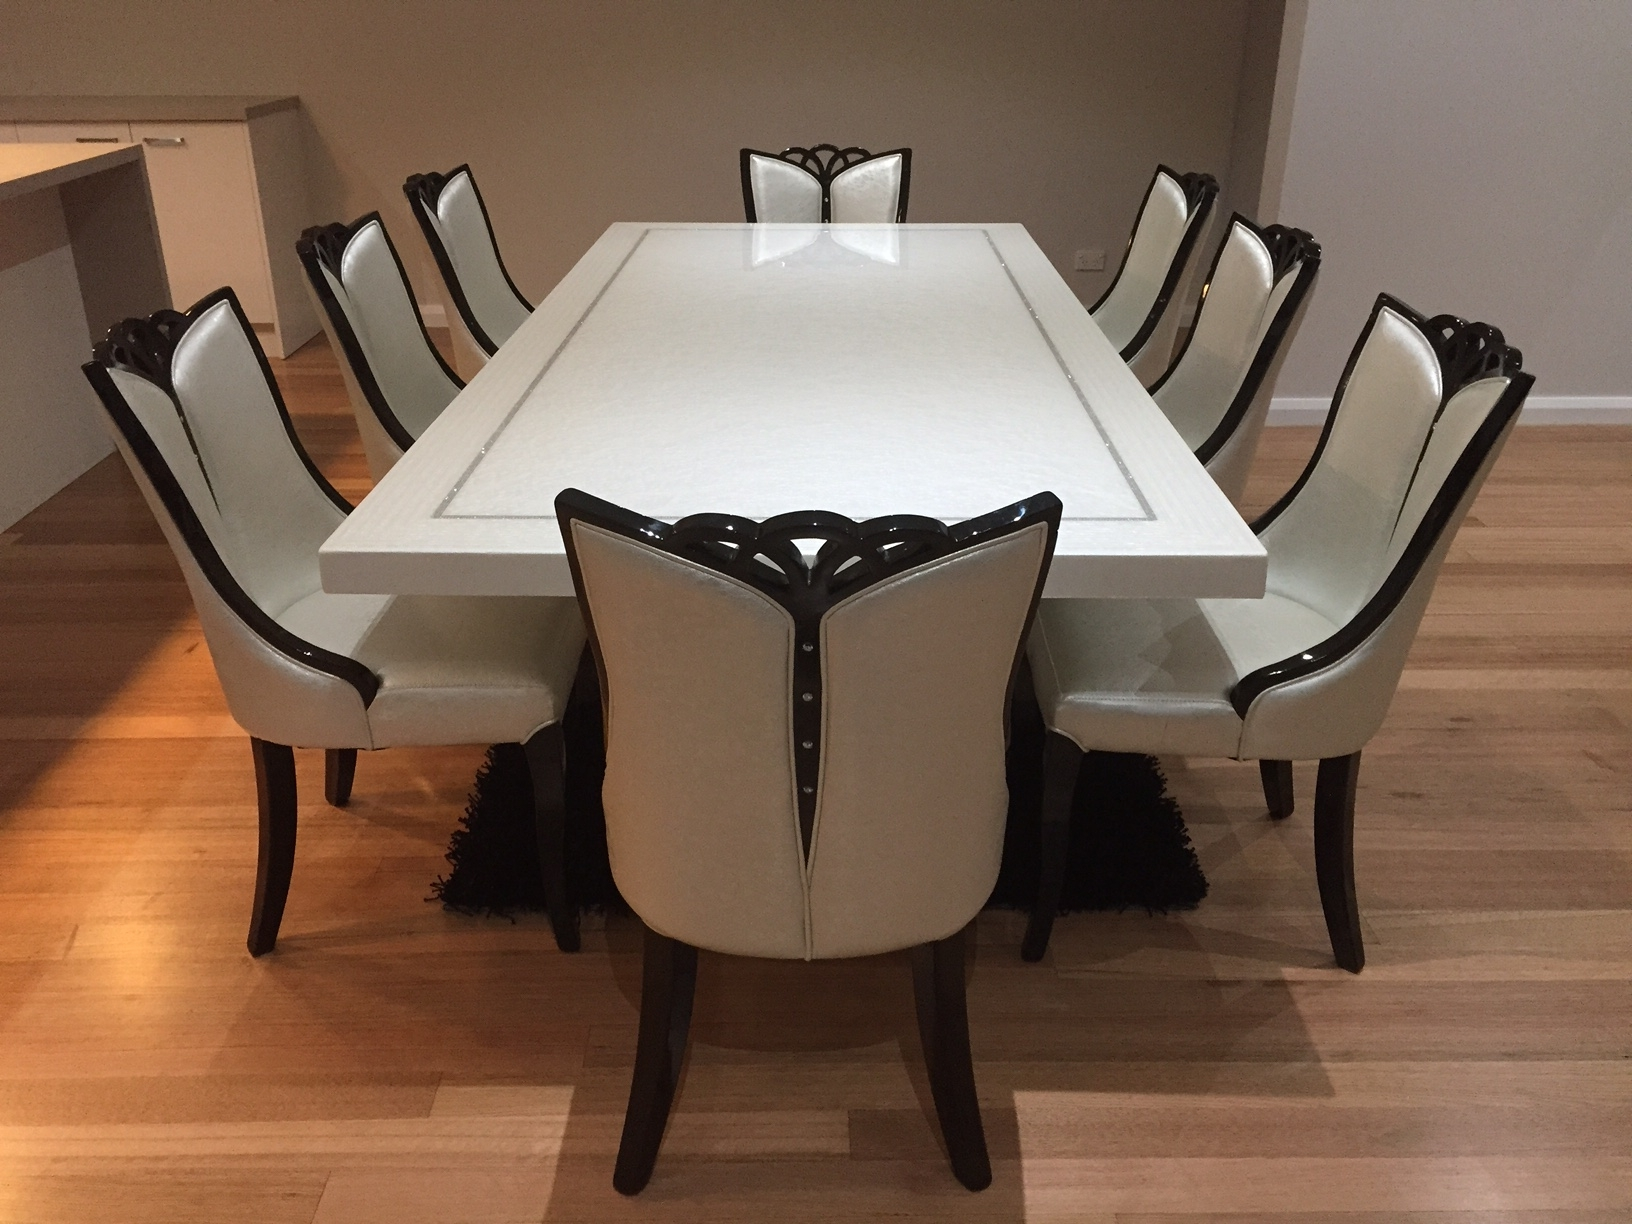 Widely Used Bianca Marble Dining Table With 8 Chairs Marble King, Dining Table With White Dining Tables 8 Seater (View 25 of 25)